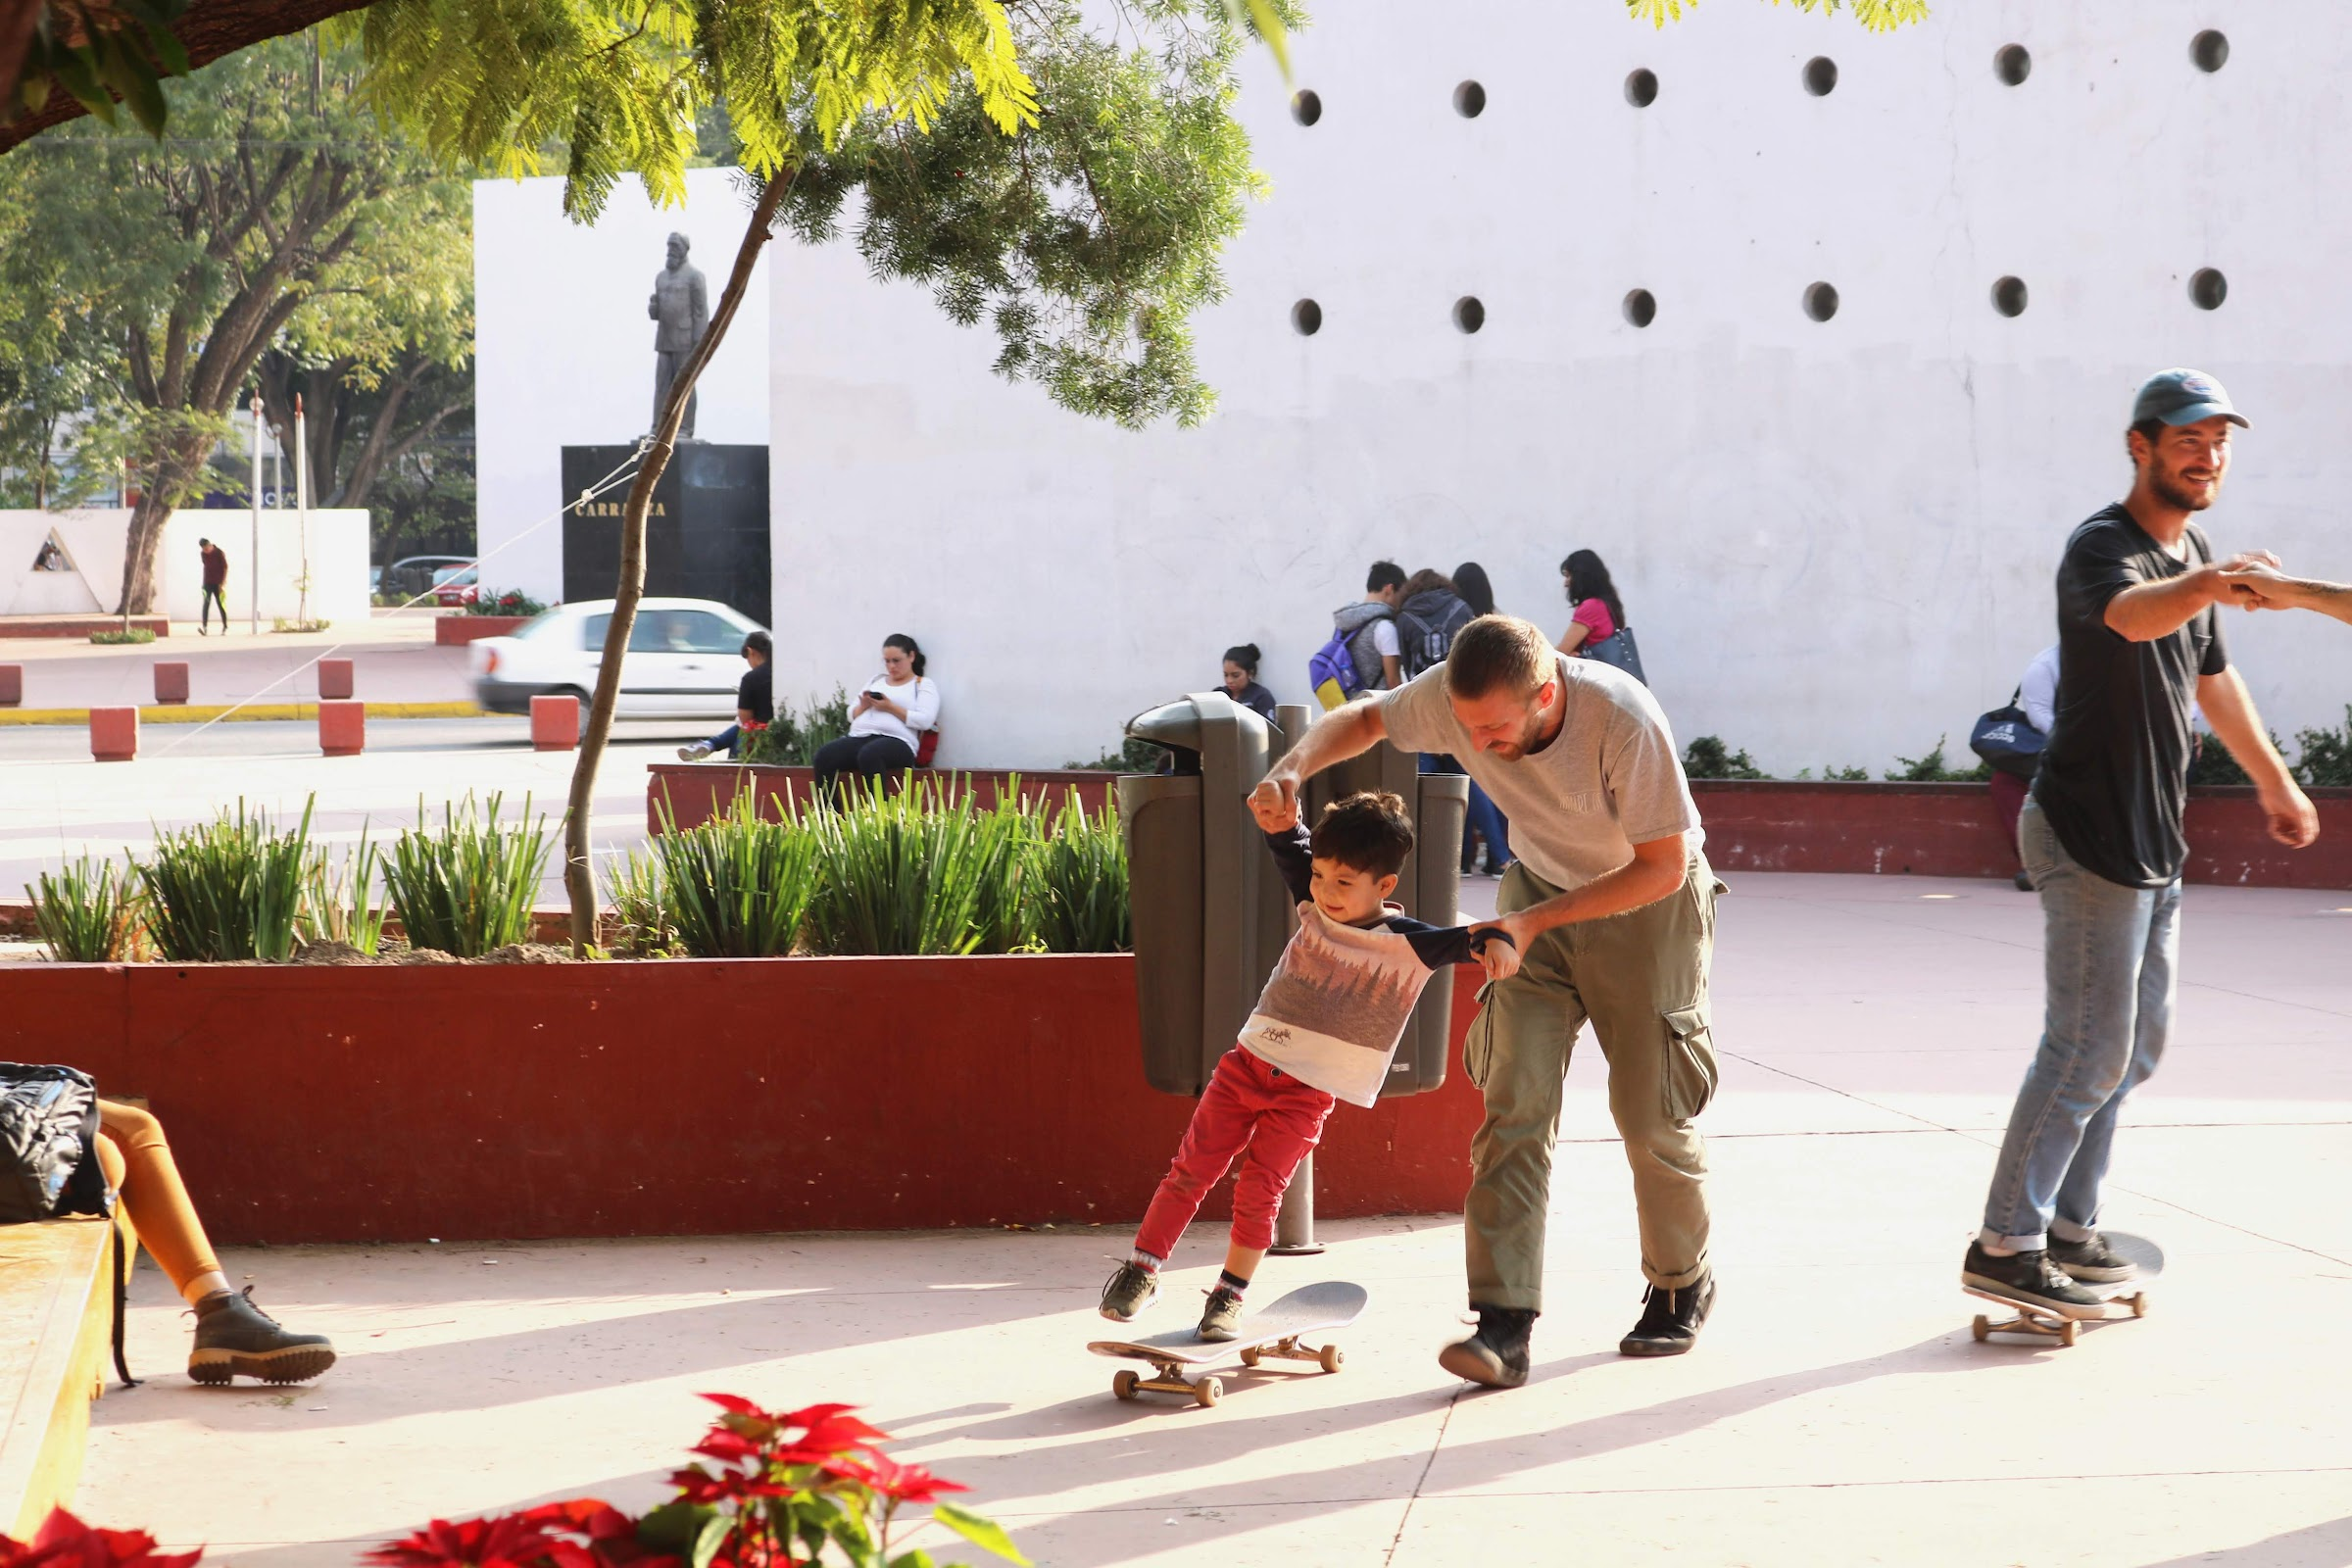 Skateboarder teaching kid